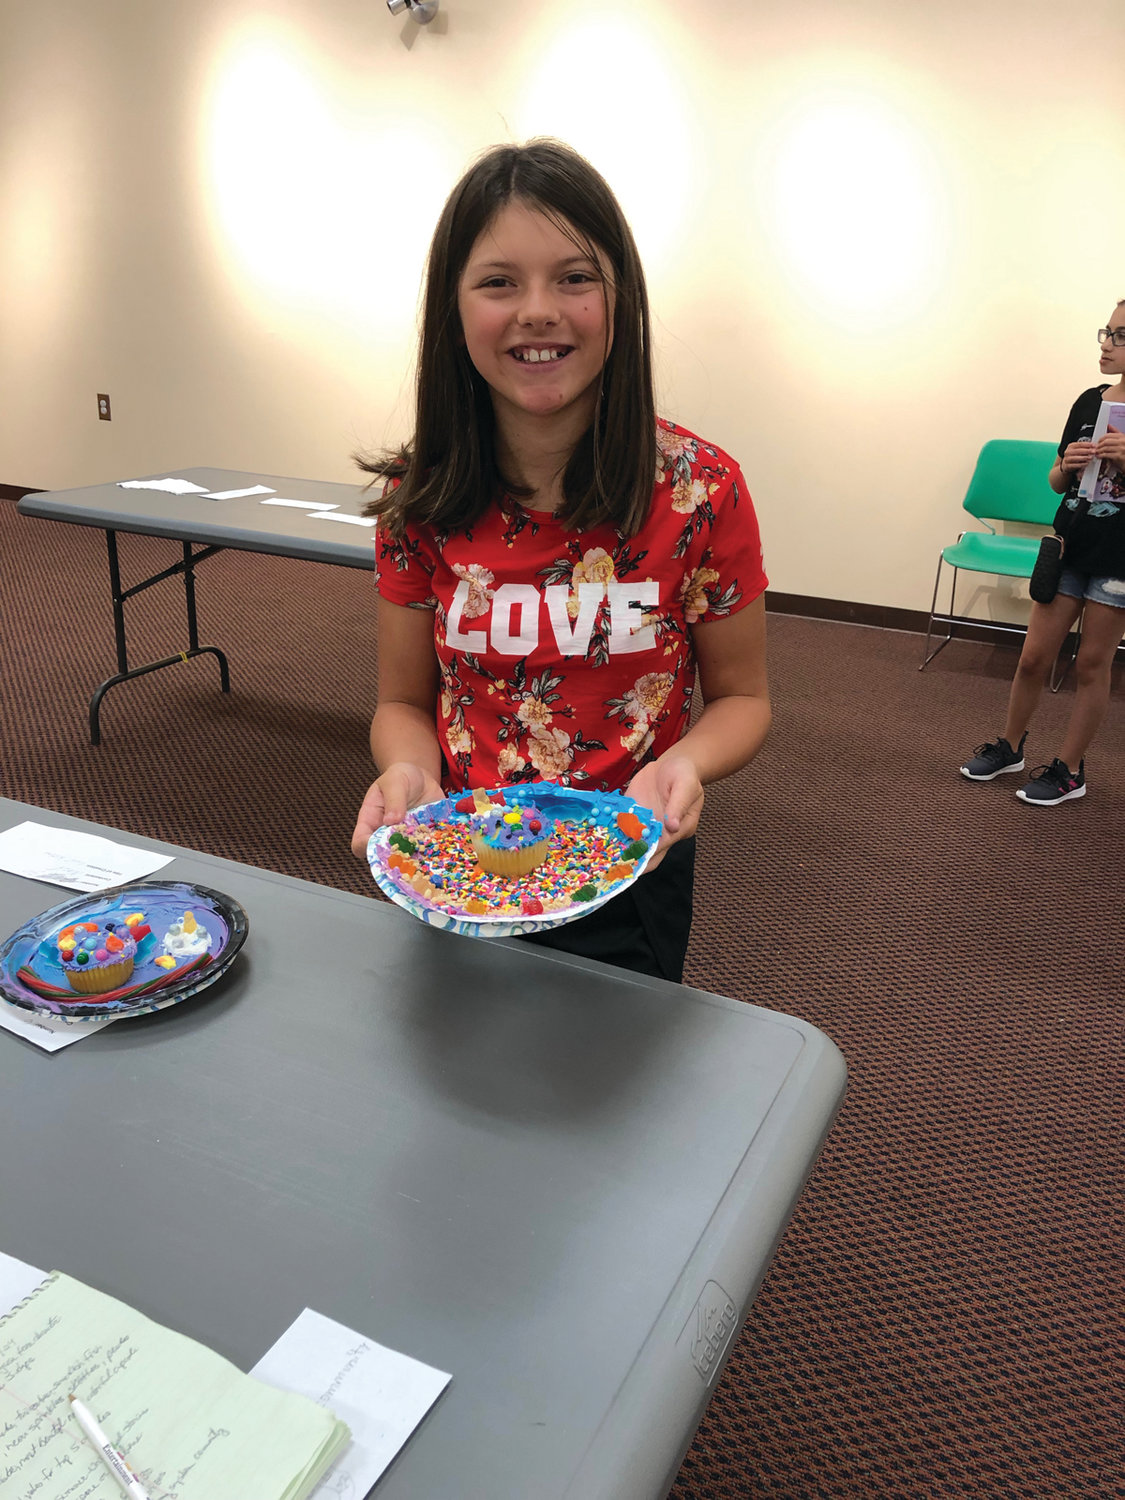 CUPCAKE CHAMP: Thirteen-year-old Adrianna Prete, an eighth-grader at Western Hills Middle School, claimed bragging rights as the first Cupcake Wars winner.